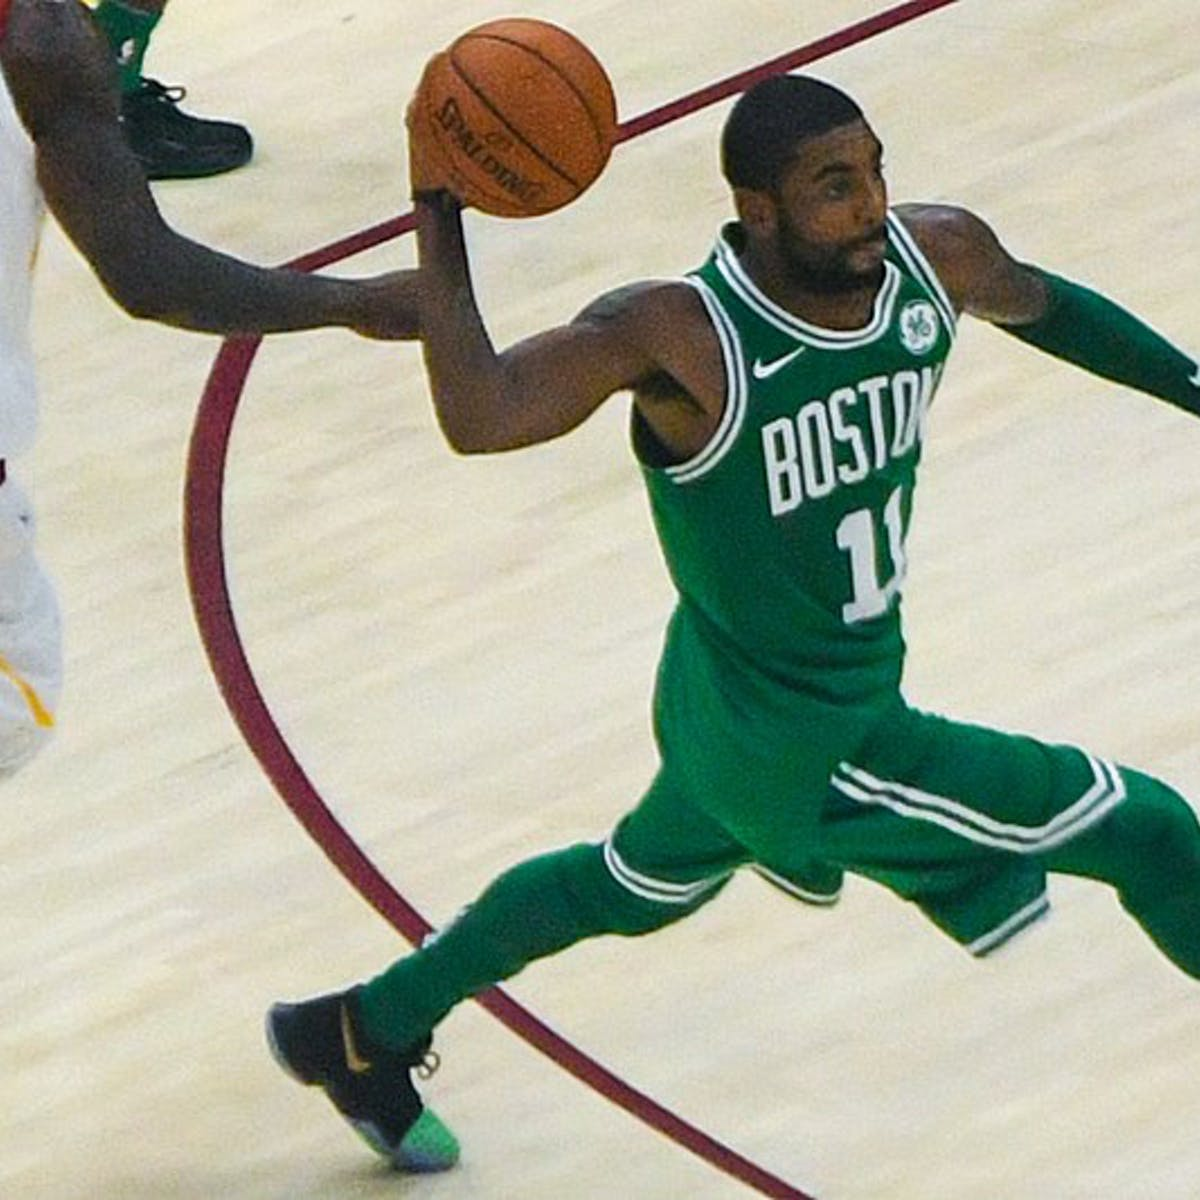 0c9a356d3b61 Kyrie Irving s Knee Surgery and Bacterial Infection Explained by Science